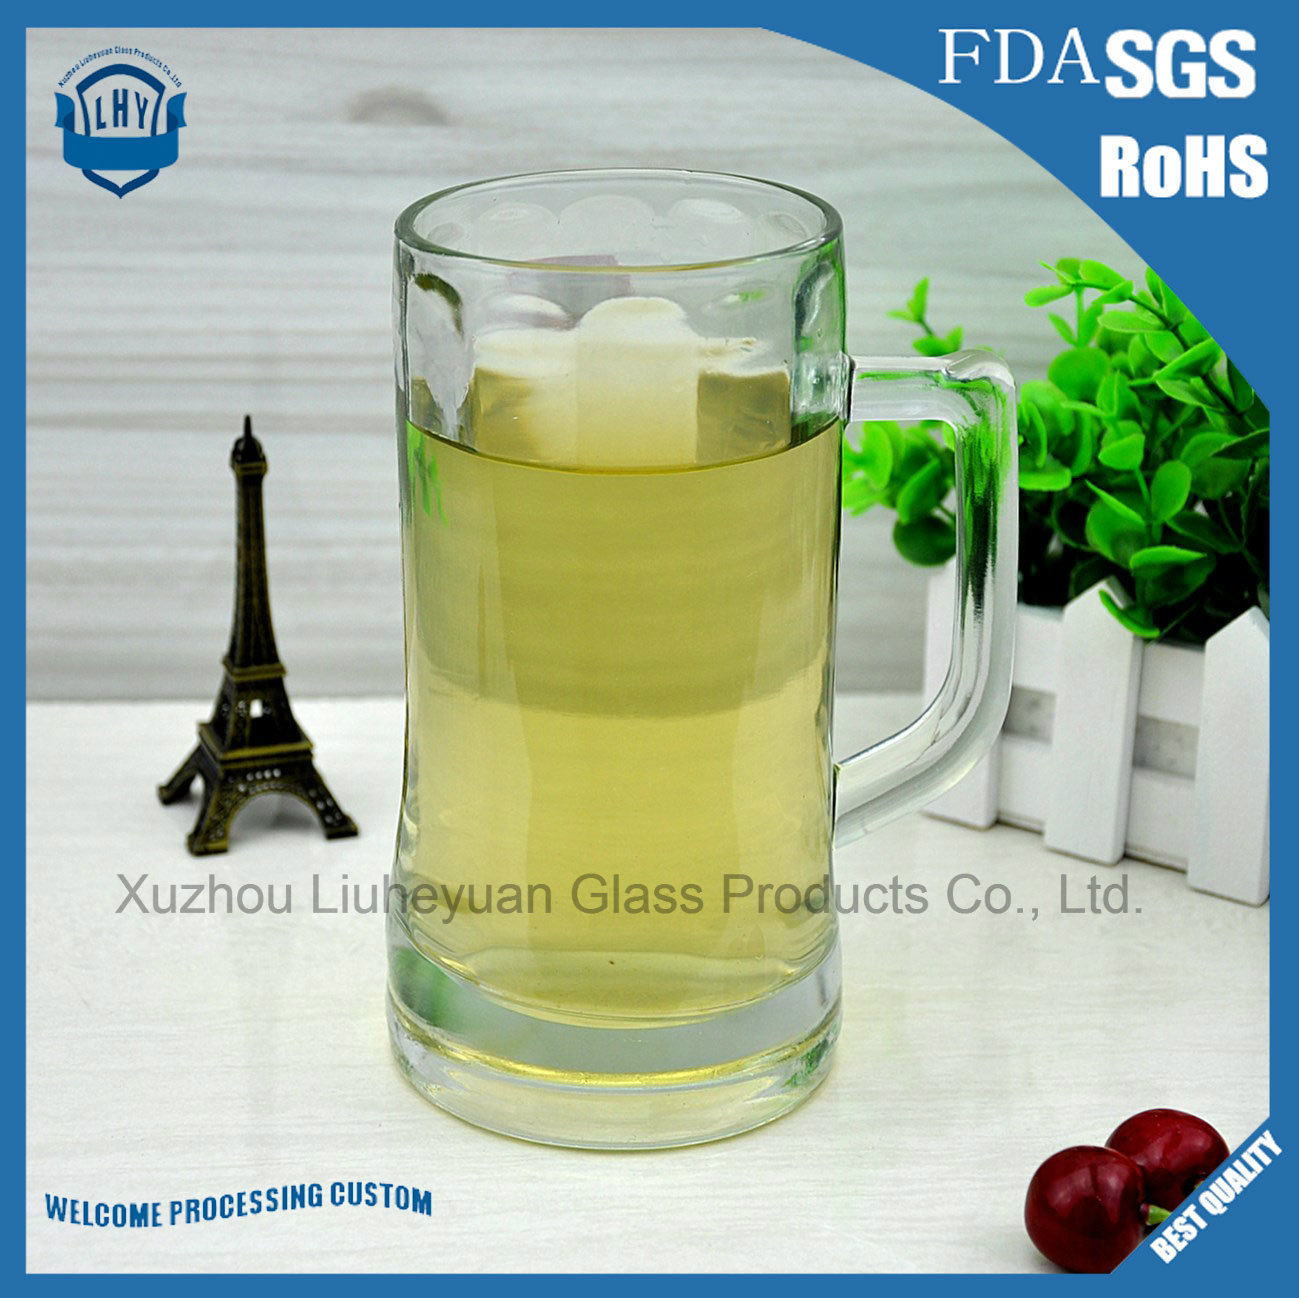 600ml High Grade Glass, High Clear, Beer Glass Cup with Handle